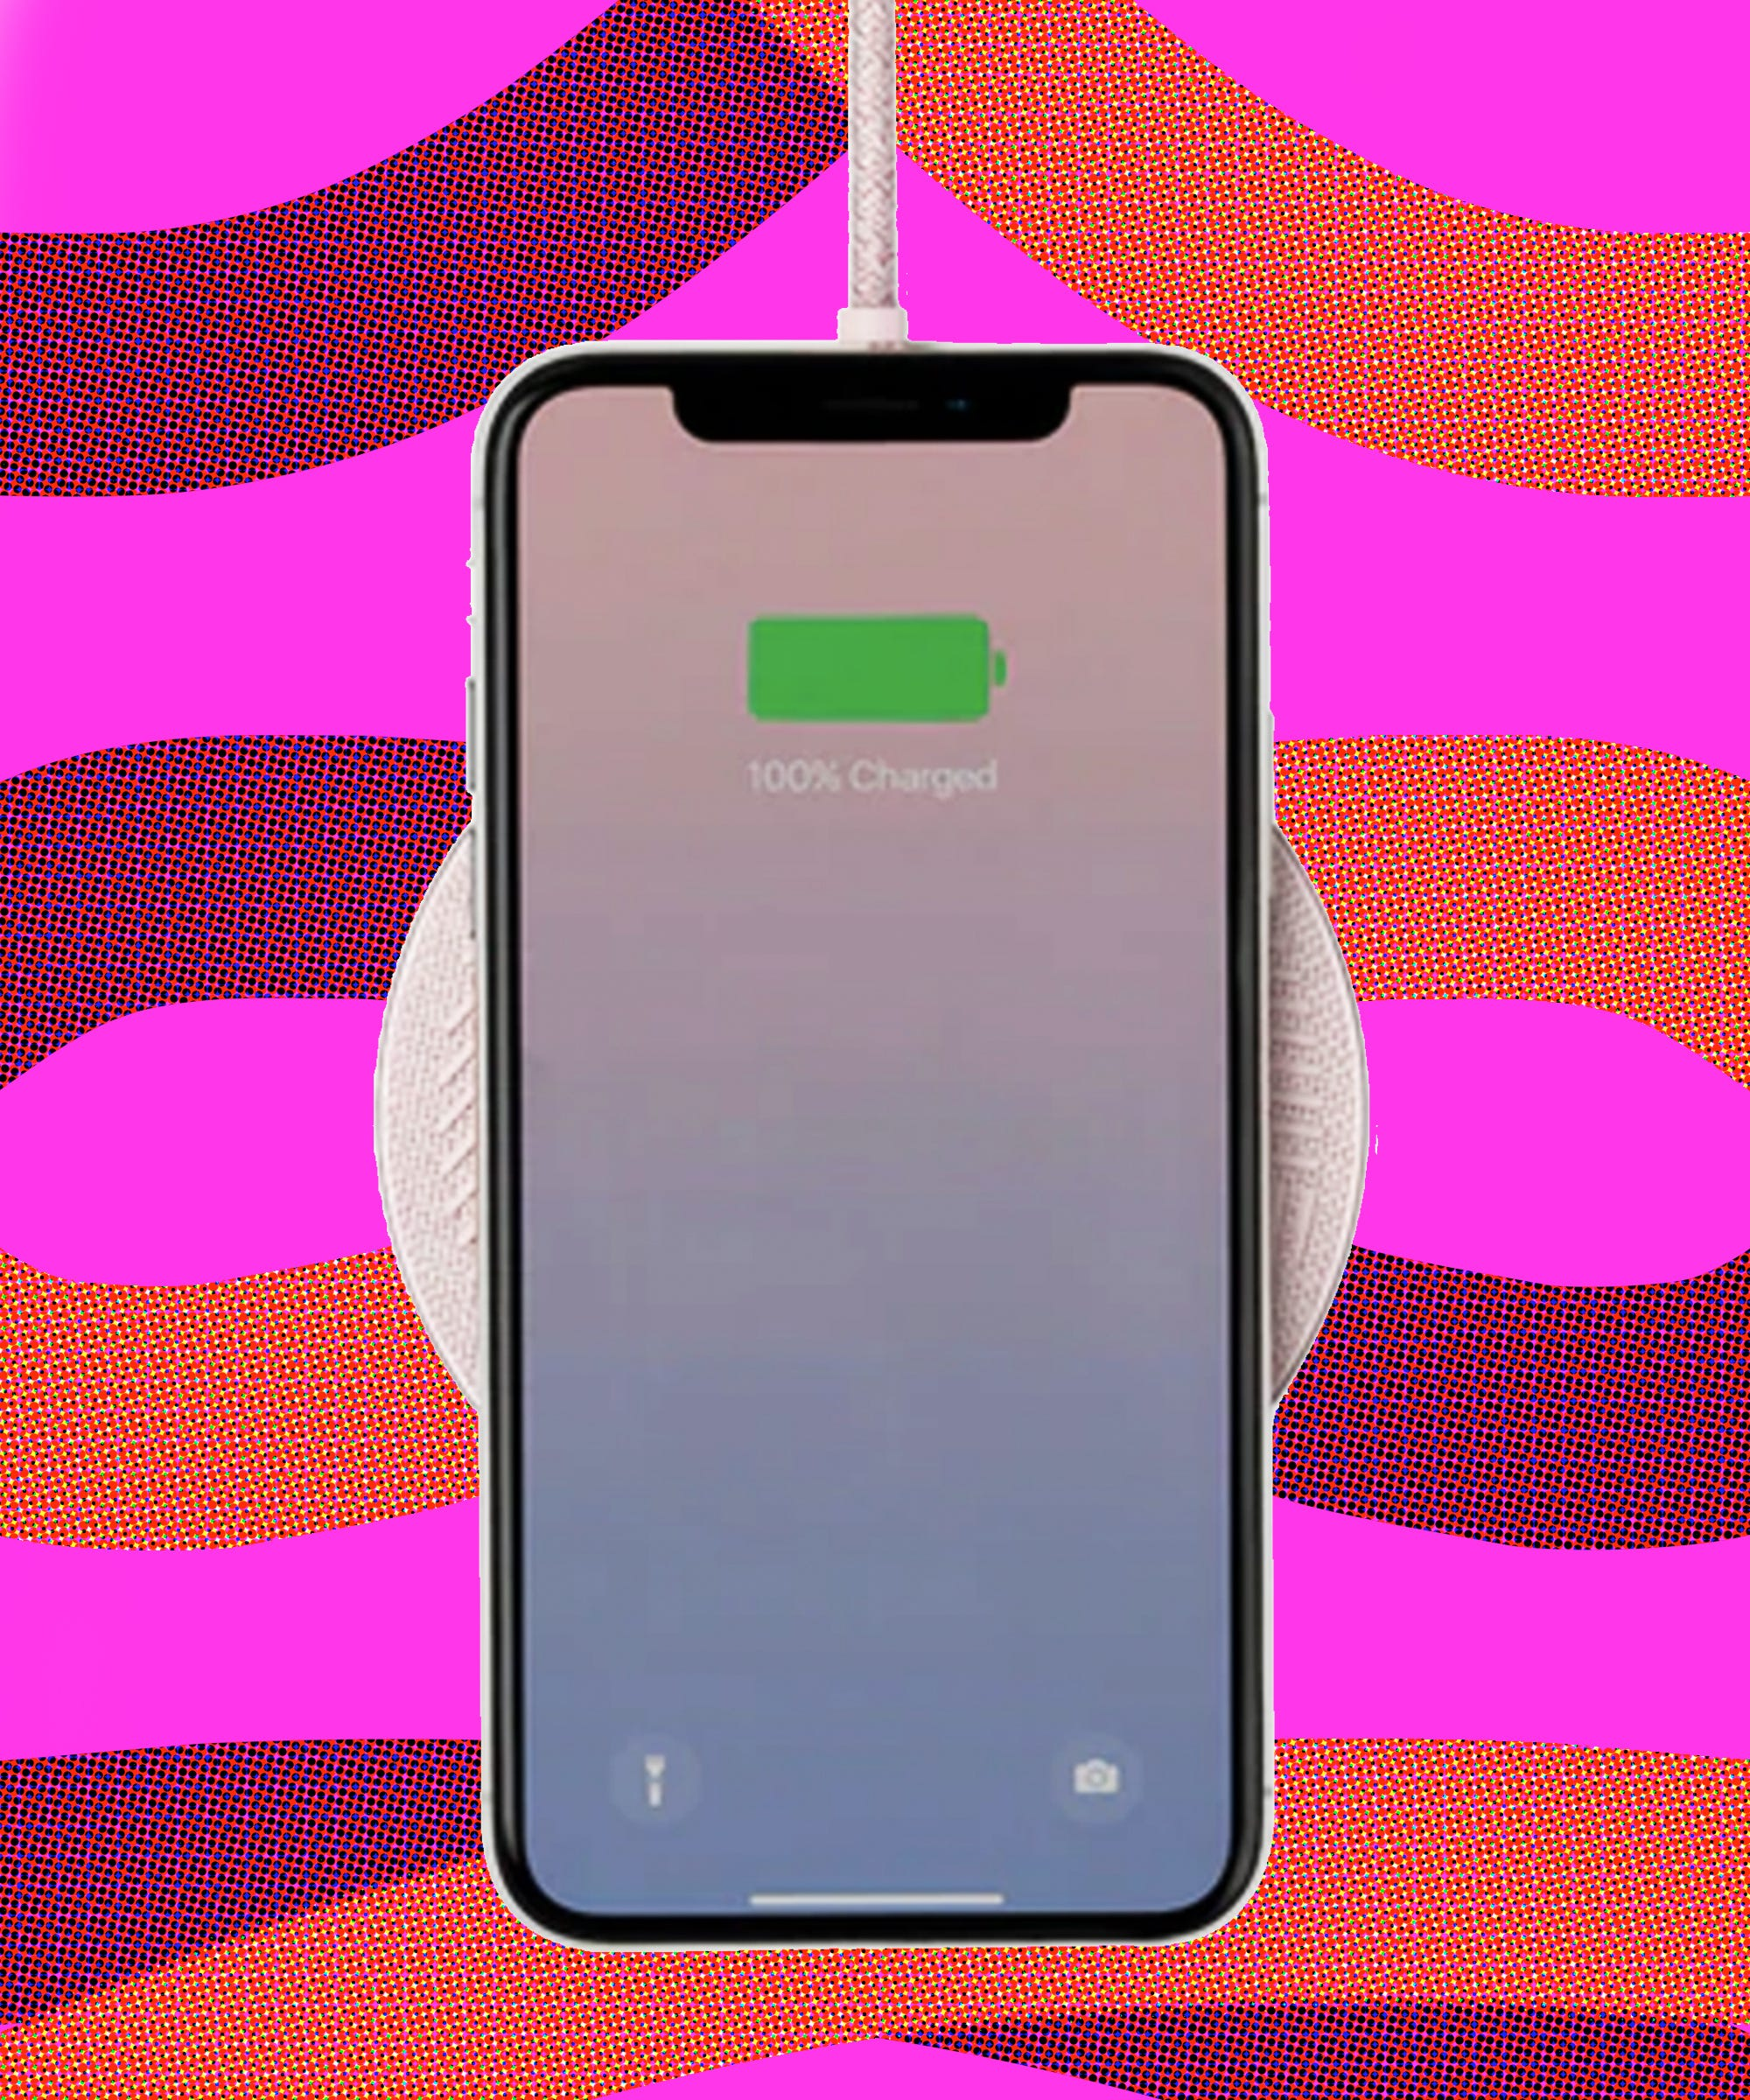 Apple's Airpower Has Wireless Charger Competition